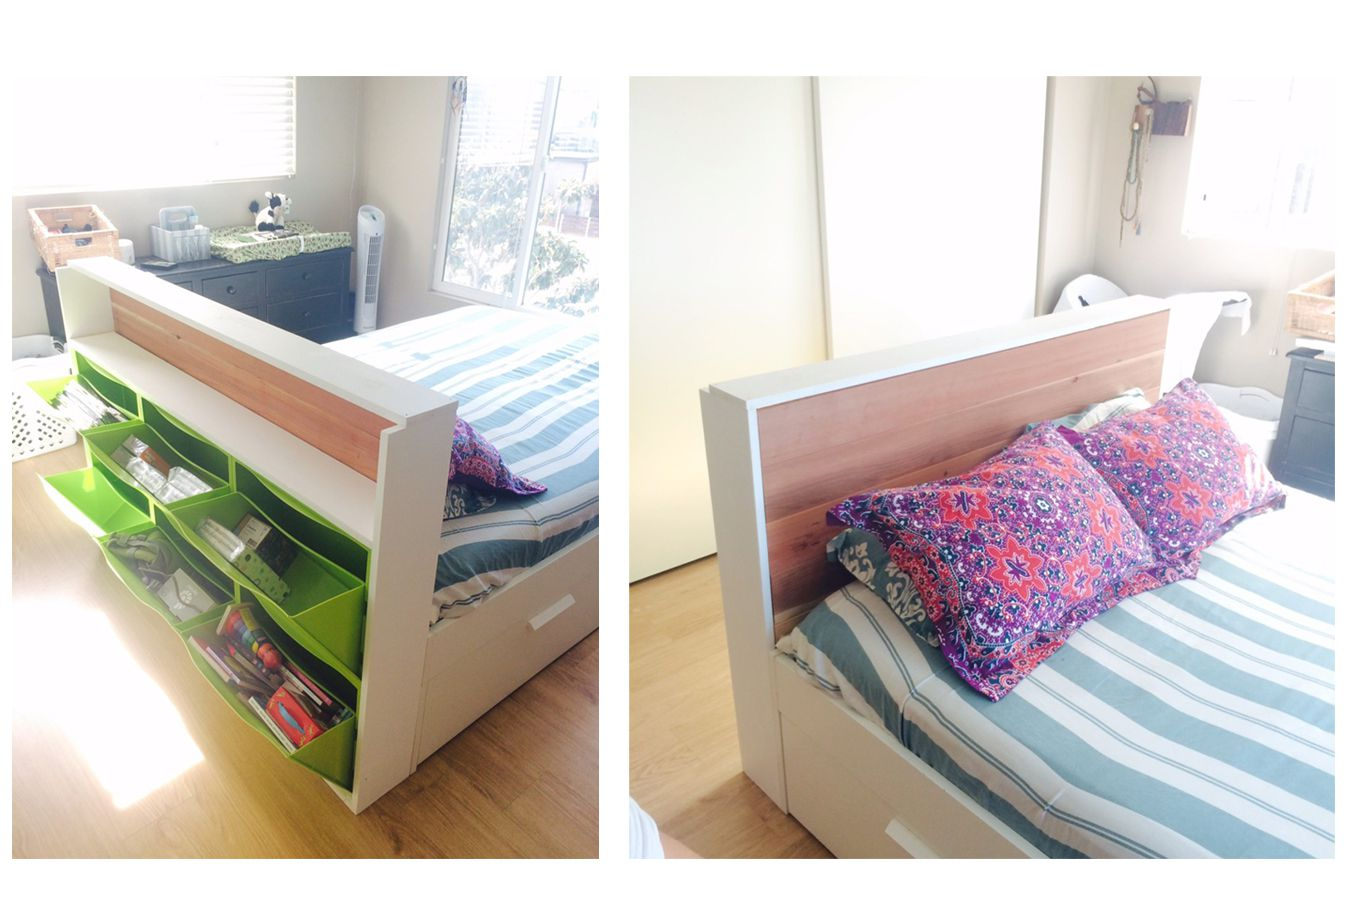 Fabulous 21 Best Ikea Storage Hacks For Small Bedrooms pertaining to Small Bedroom Hacks